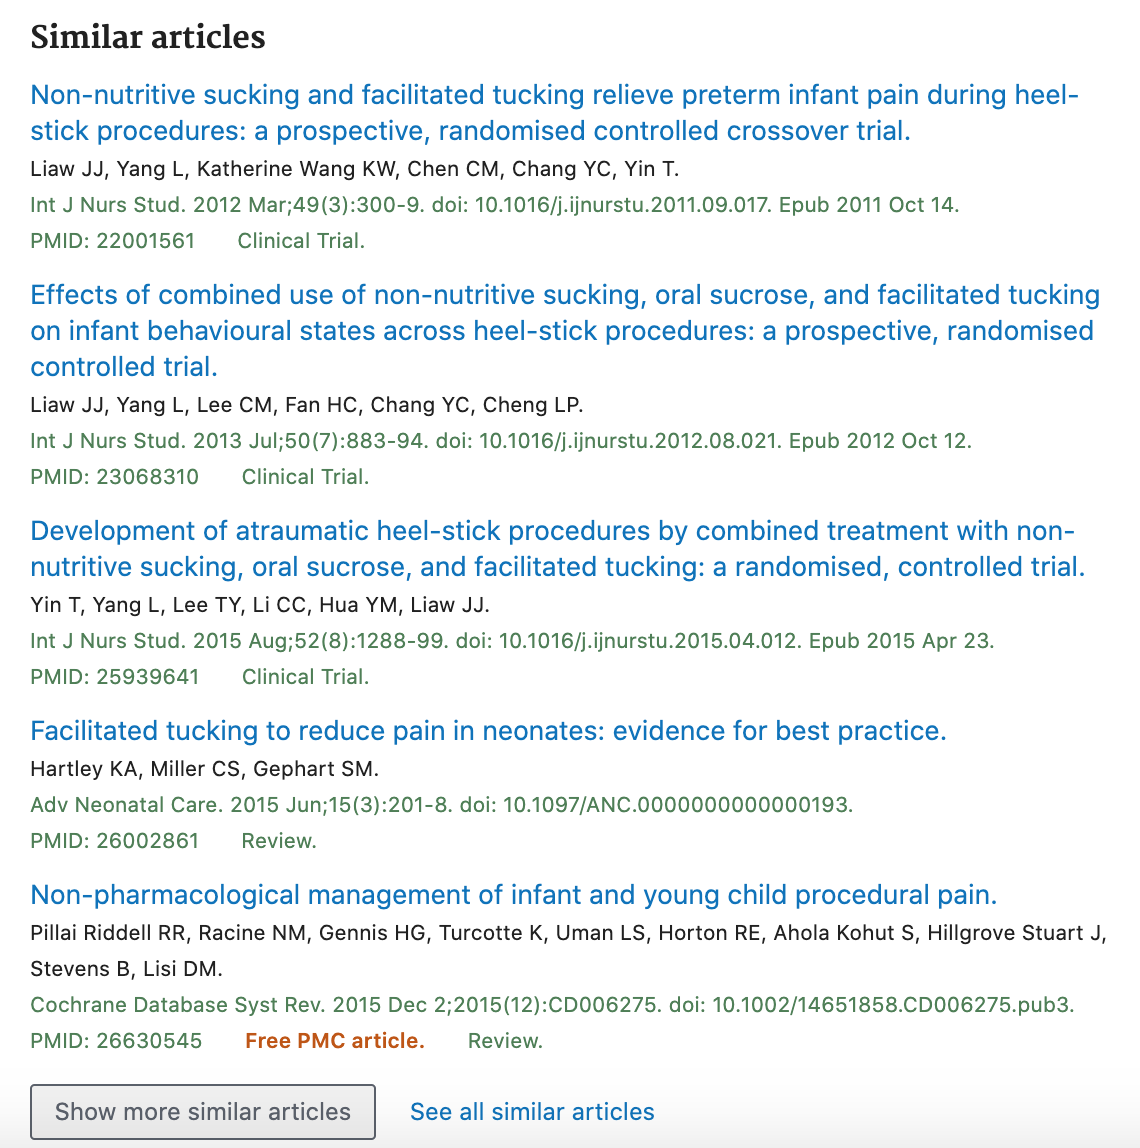 Similar articles for one citation